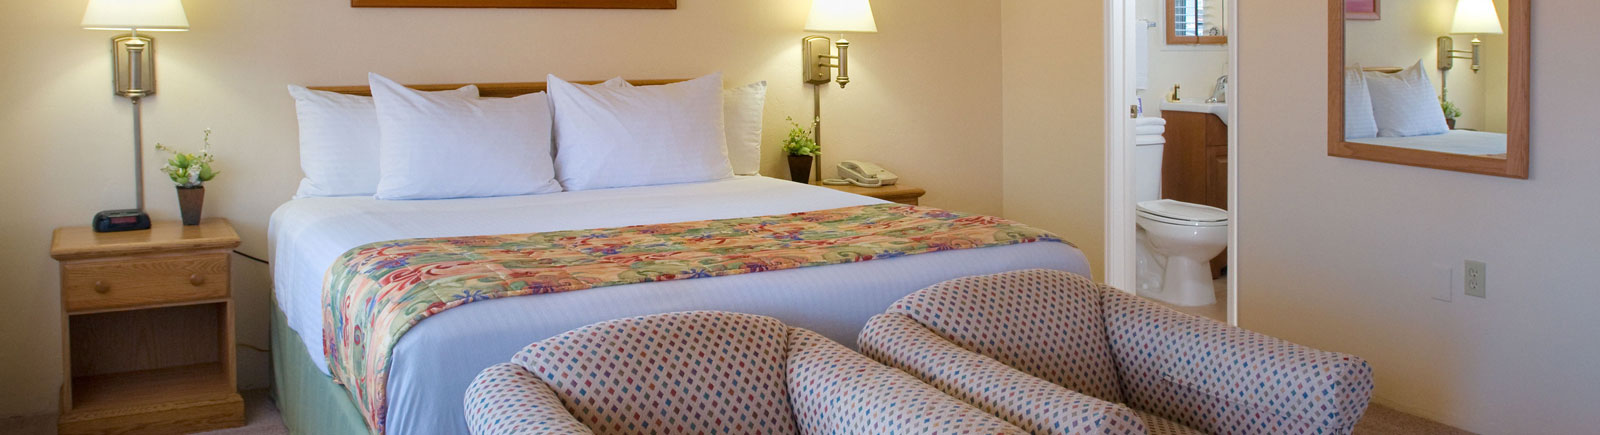 San Diego Airport Hotel Parking Packages